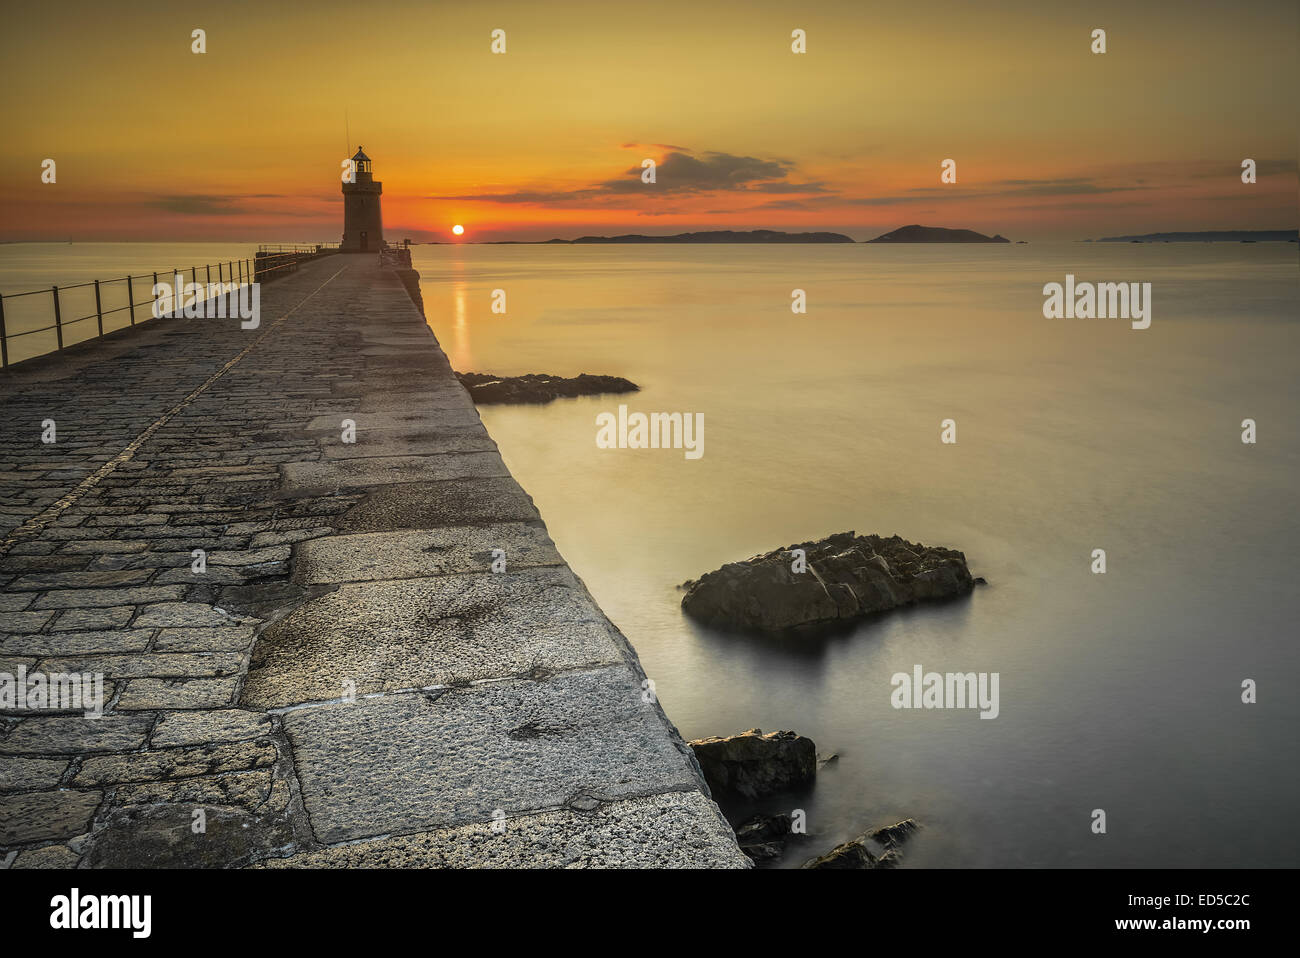 The sunrises over Herm, taken from castle cornet break water, St Peter Port, Guernsey Channel Islands - Stock Image